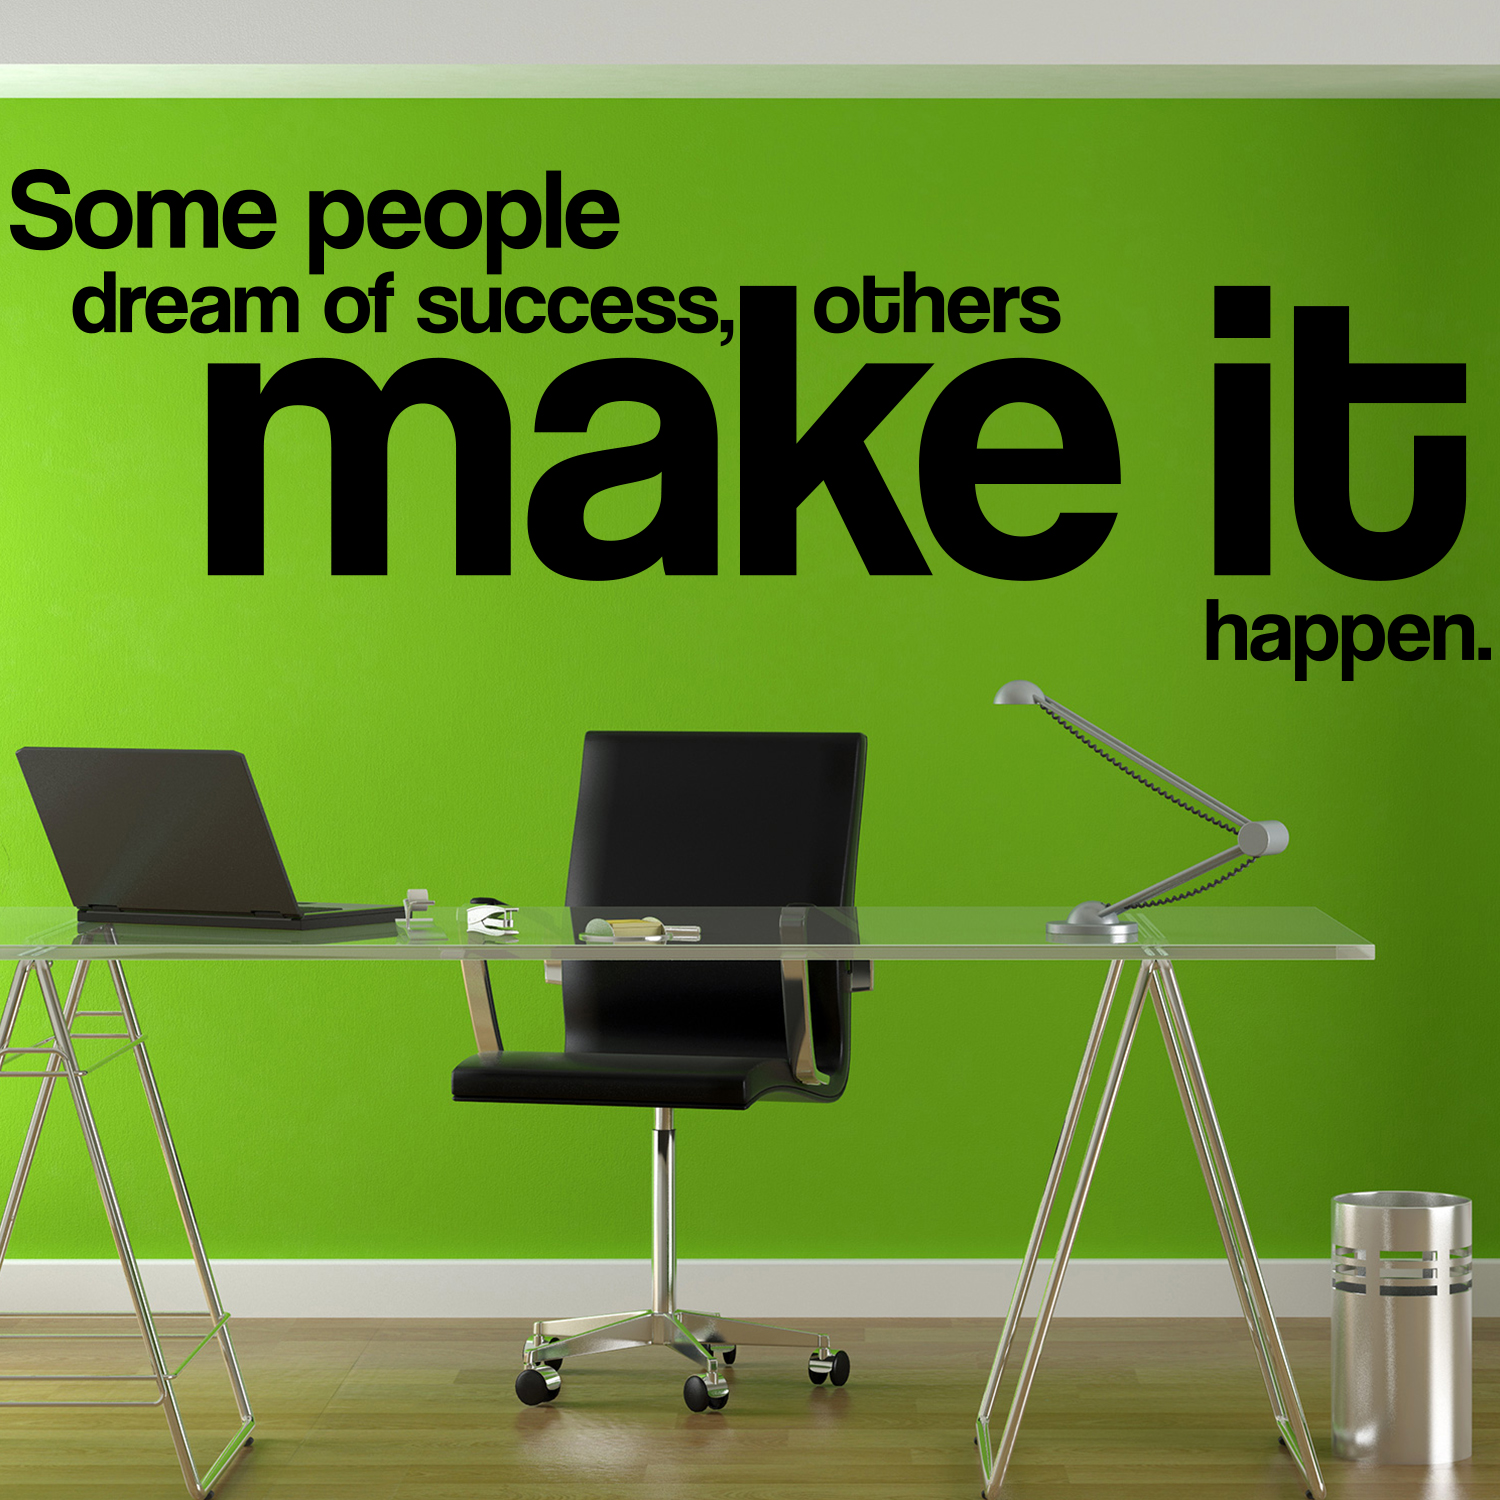 Mary Kay Ash Three Types People Make Happen Office Inspirational Women Vinyl Lettering Wall Decal Decoration Quote Sticker Art Decor M02